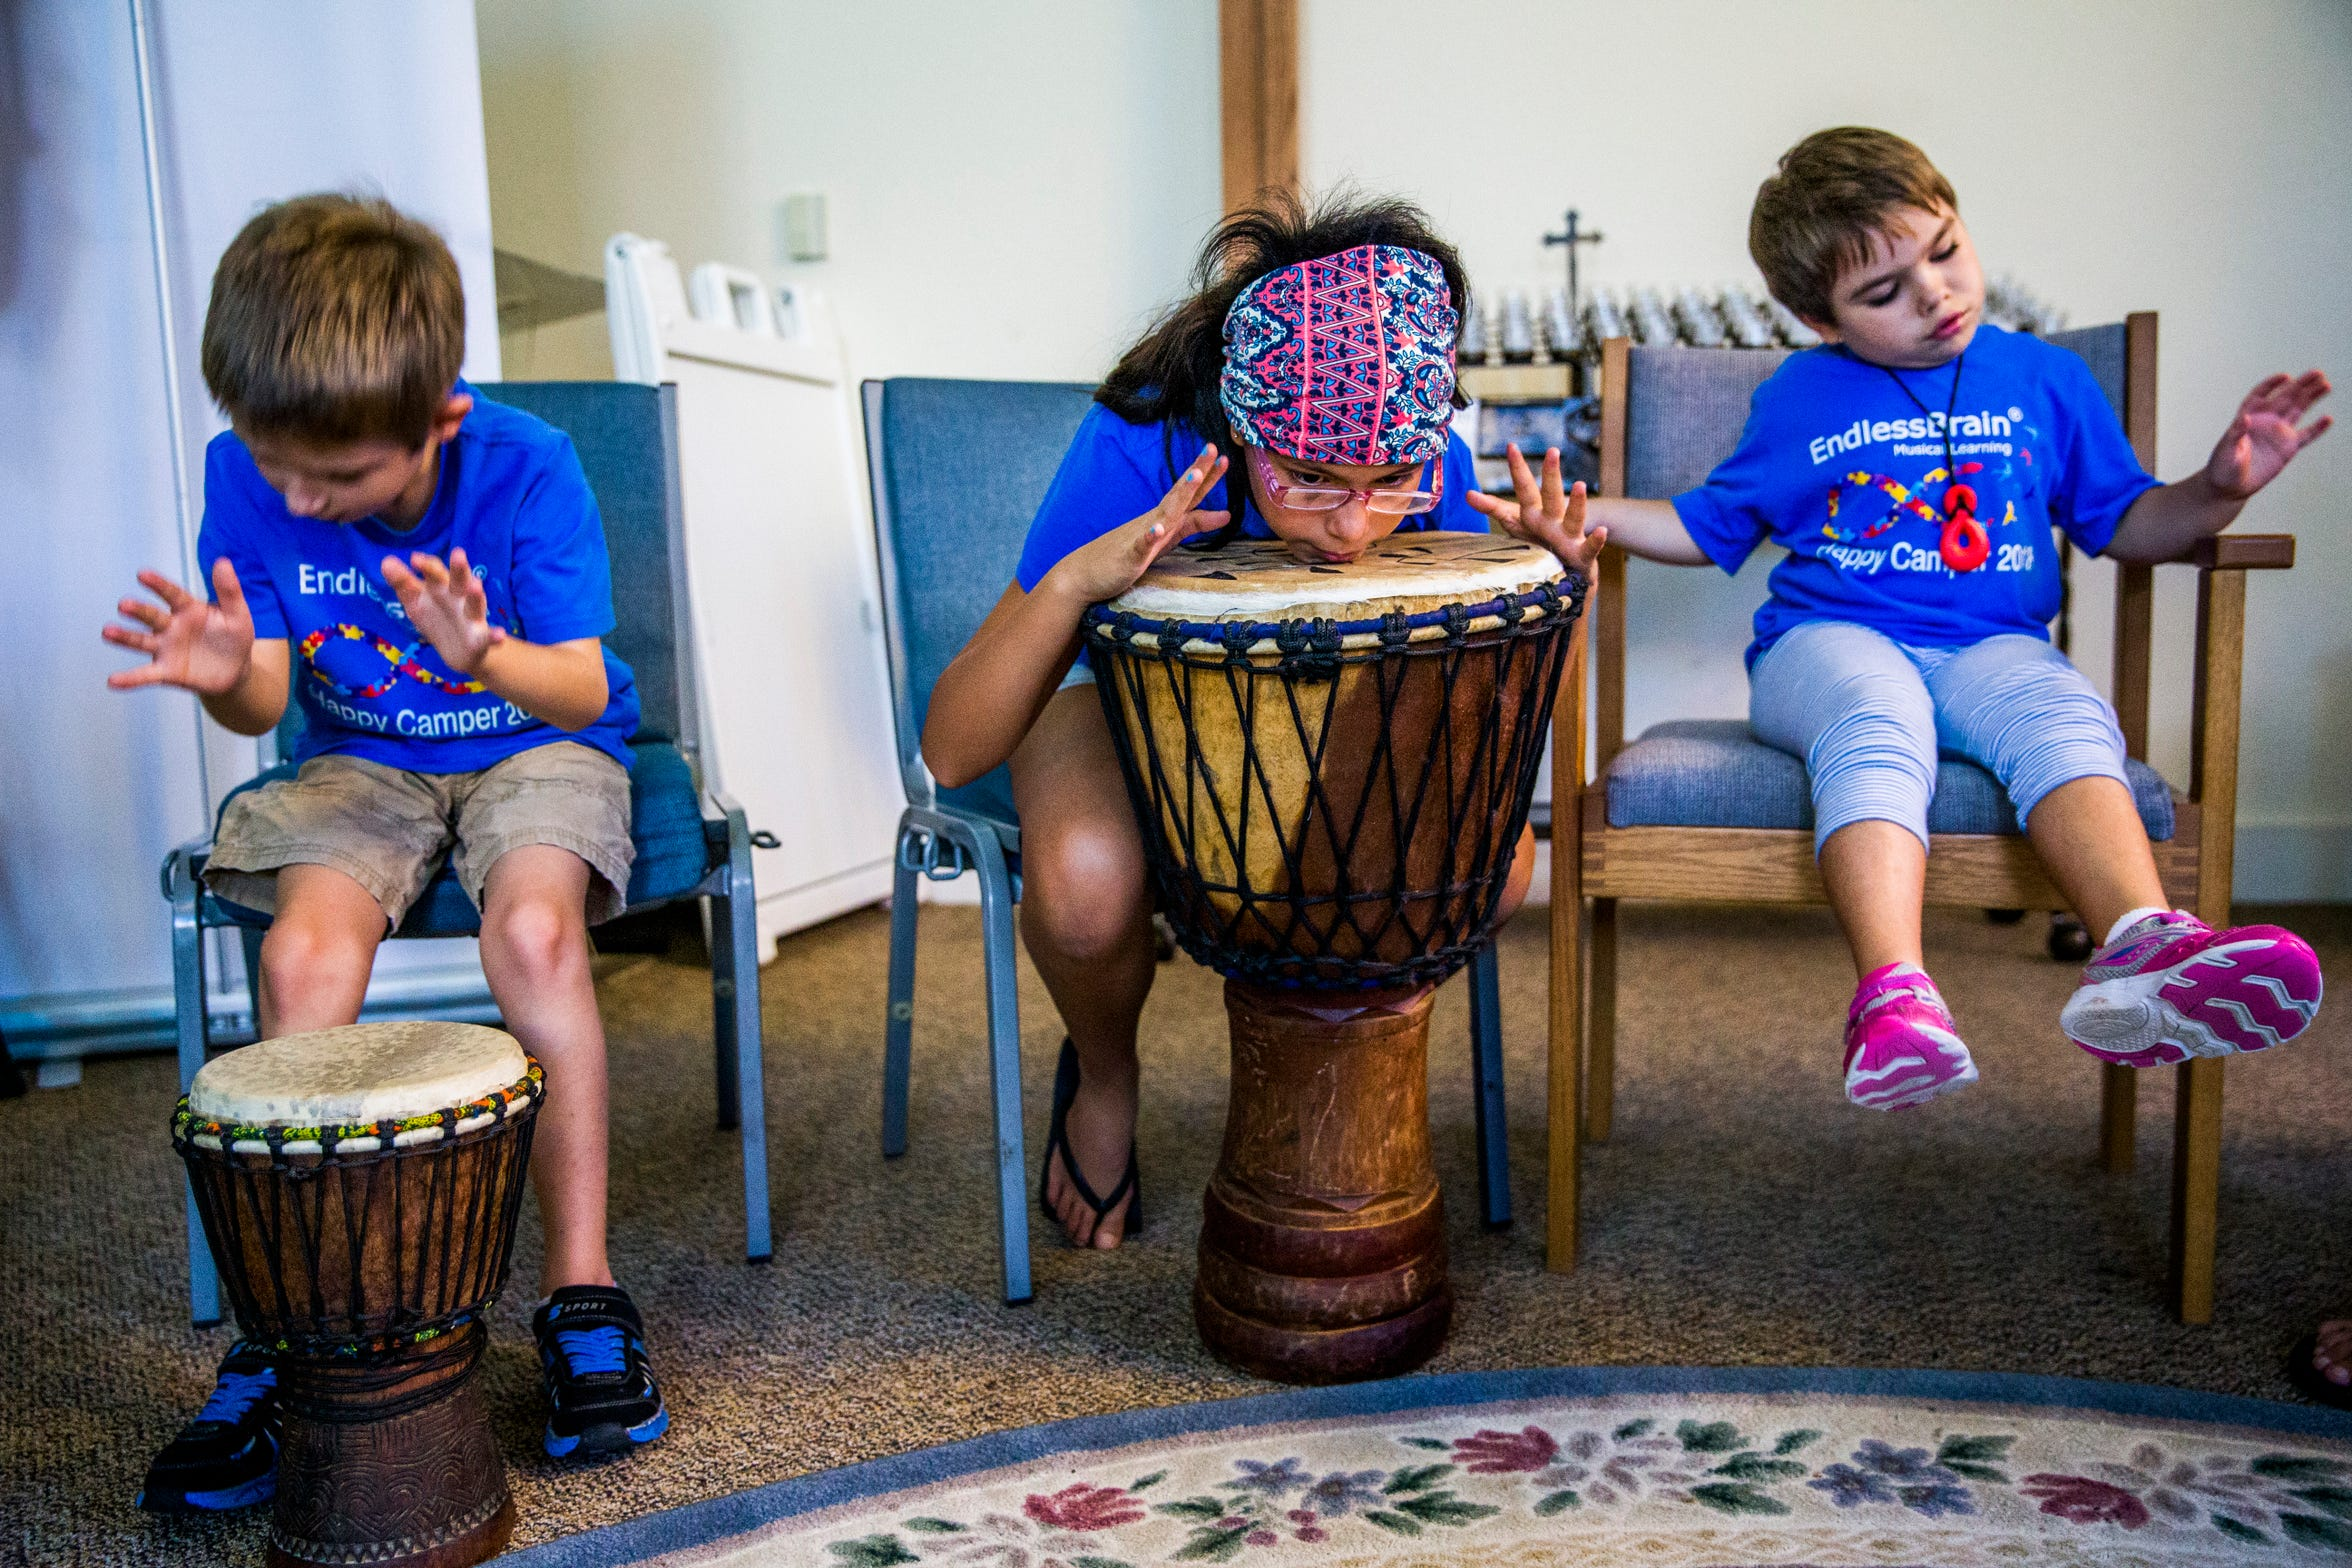 """Nicholaj Solovjov, 7, from left, Camila Chang, 11, and Talley Louise Wilson, 7, sing and drum together during the EndlessBrain summer camp at Emmanuel Lutheran Church in Naples on Thursday, Aug. 9, 2018. Marcela Guimoye started EndlessBrain because she felt there weren't enough resources for kids with autism. She says EndlessBrain is not musical therapy, but a place for kids with special needs to explore their musical interest. """"This EndlessBrain thing, I wake up so happy. Happy that they can feel their music,"""" Guimoye says."""